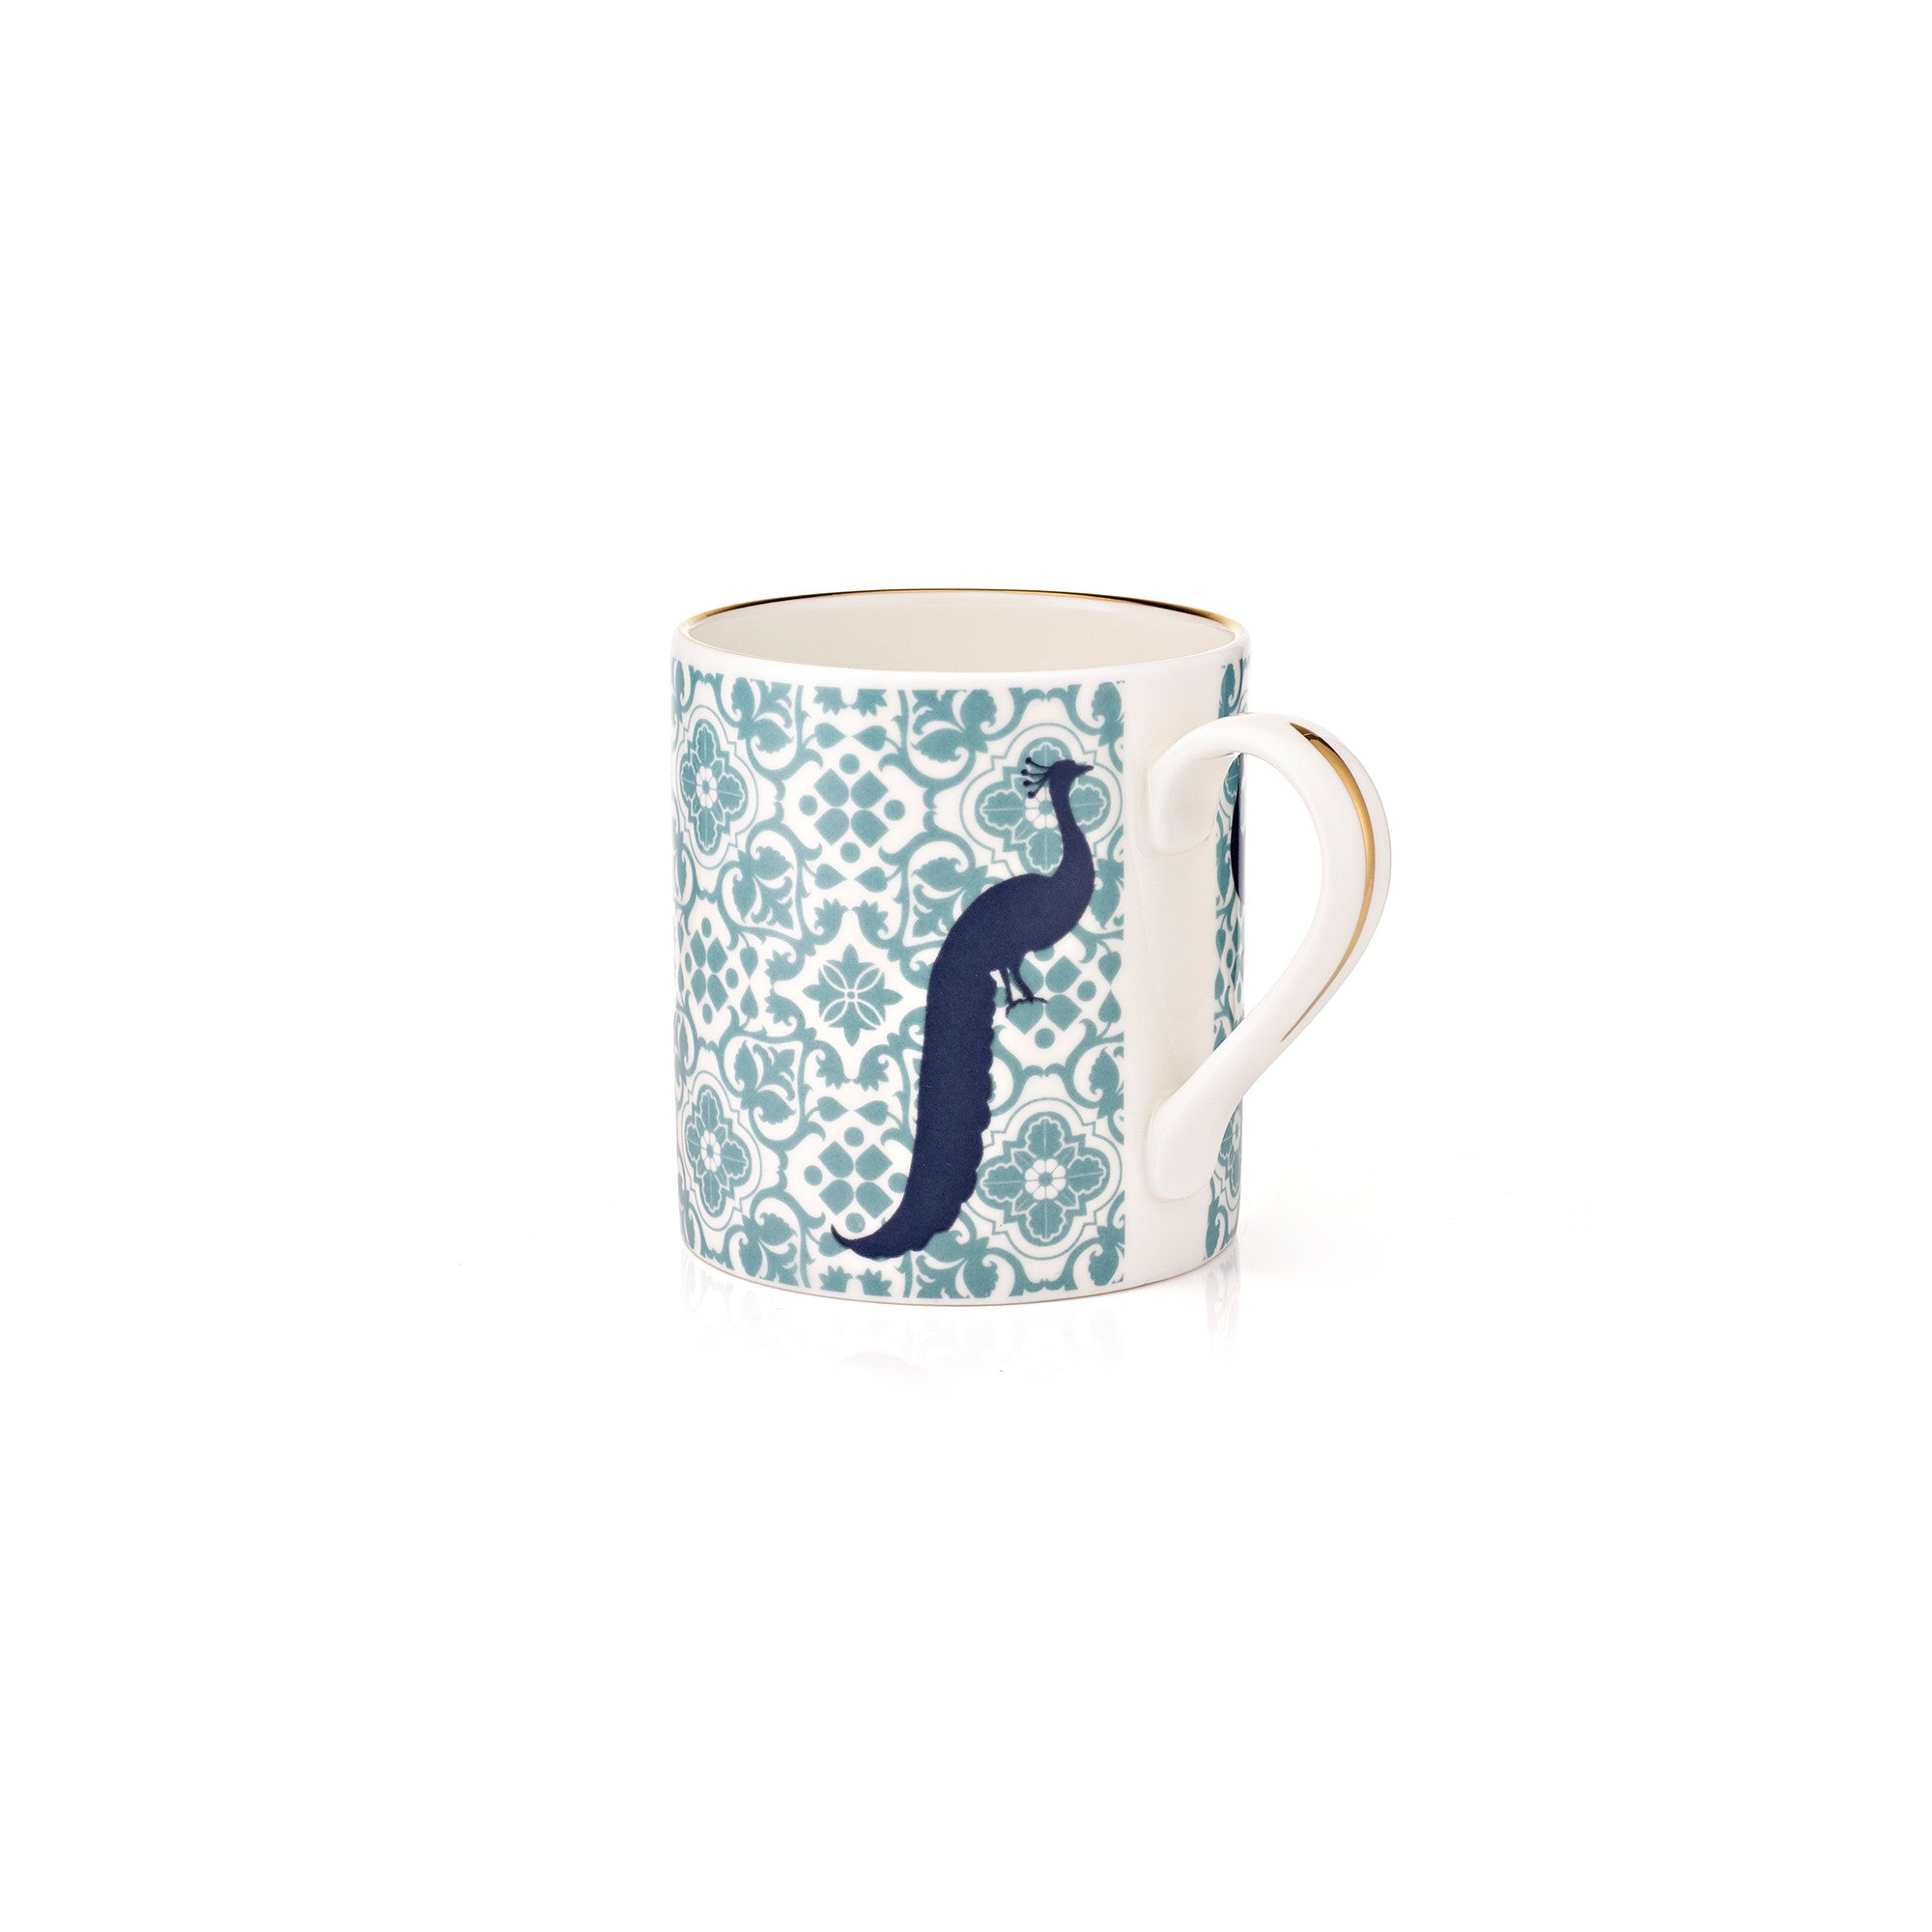 Mug with Peacocks